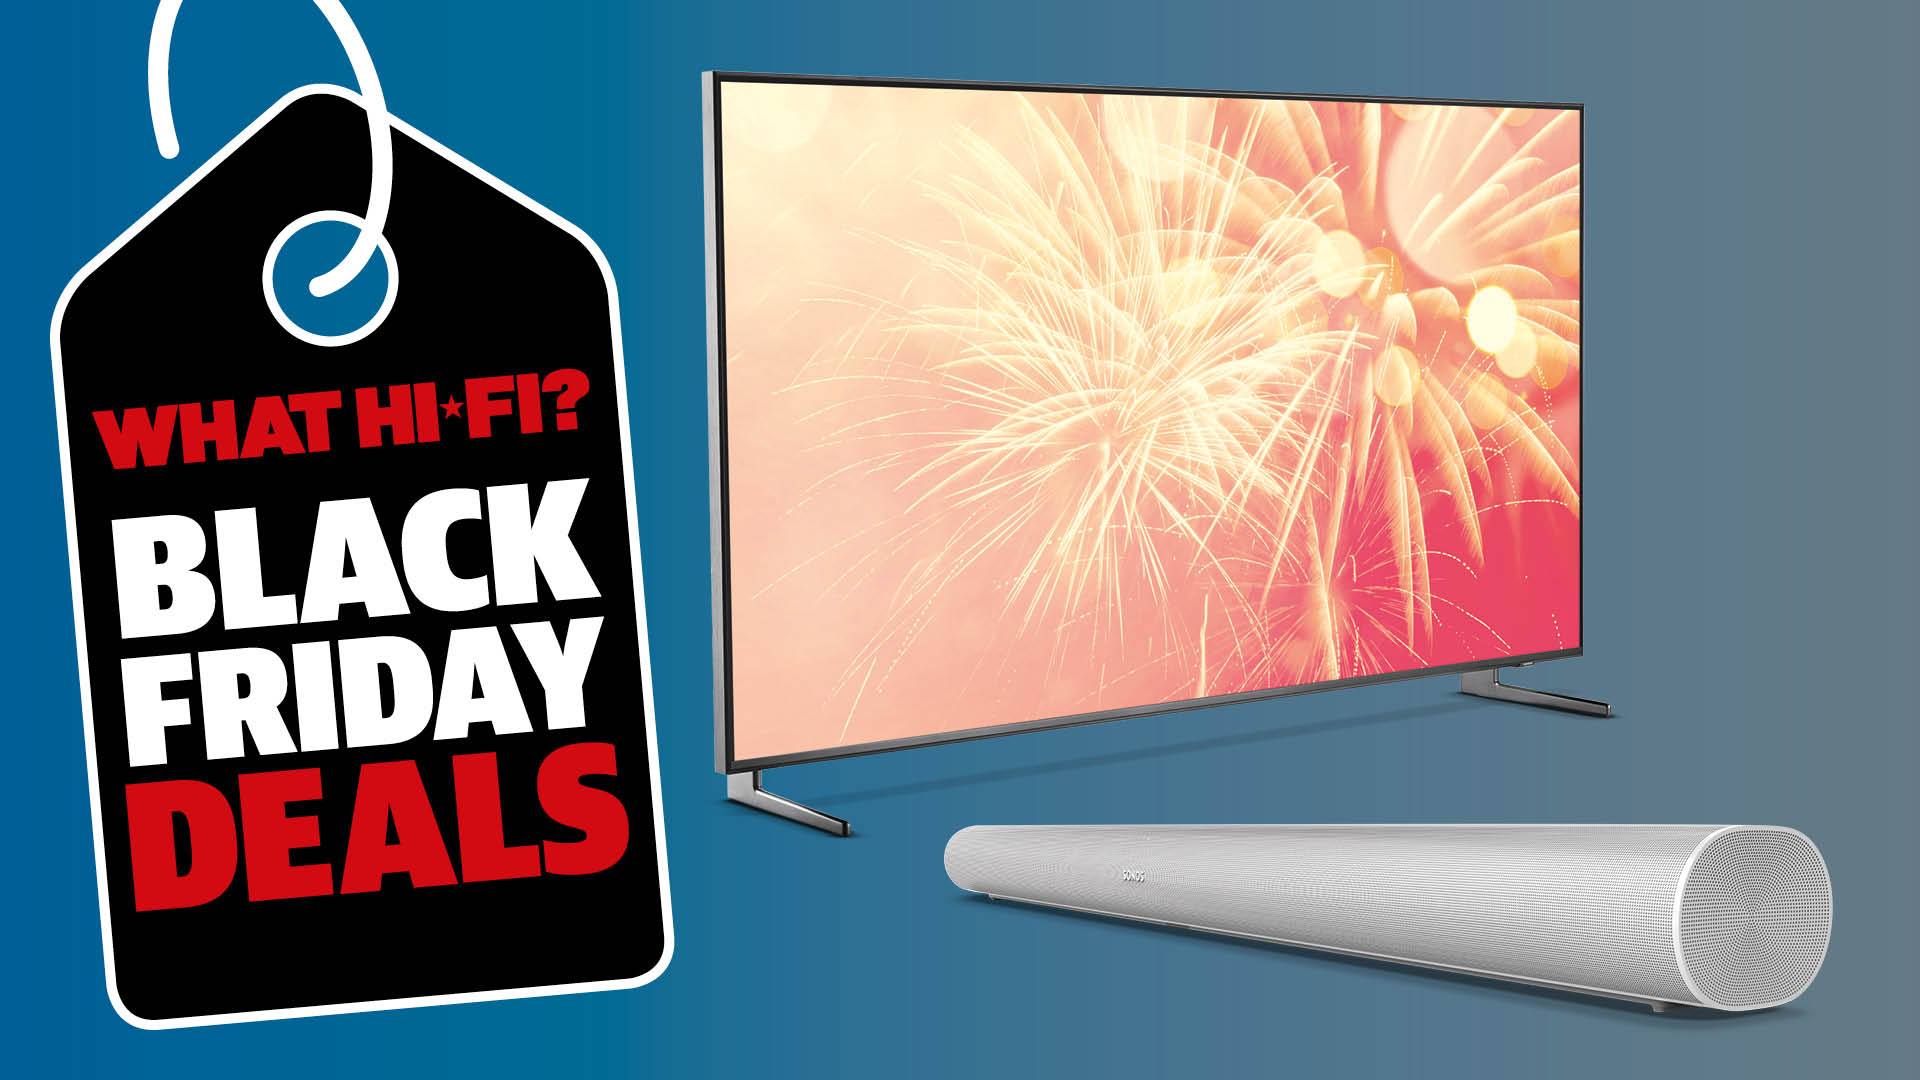 These Killer Amazon Black Friday Tv Deals Offer 2020 Sony 4k Tvs From Only 448 What Hi Fi